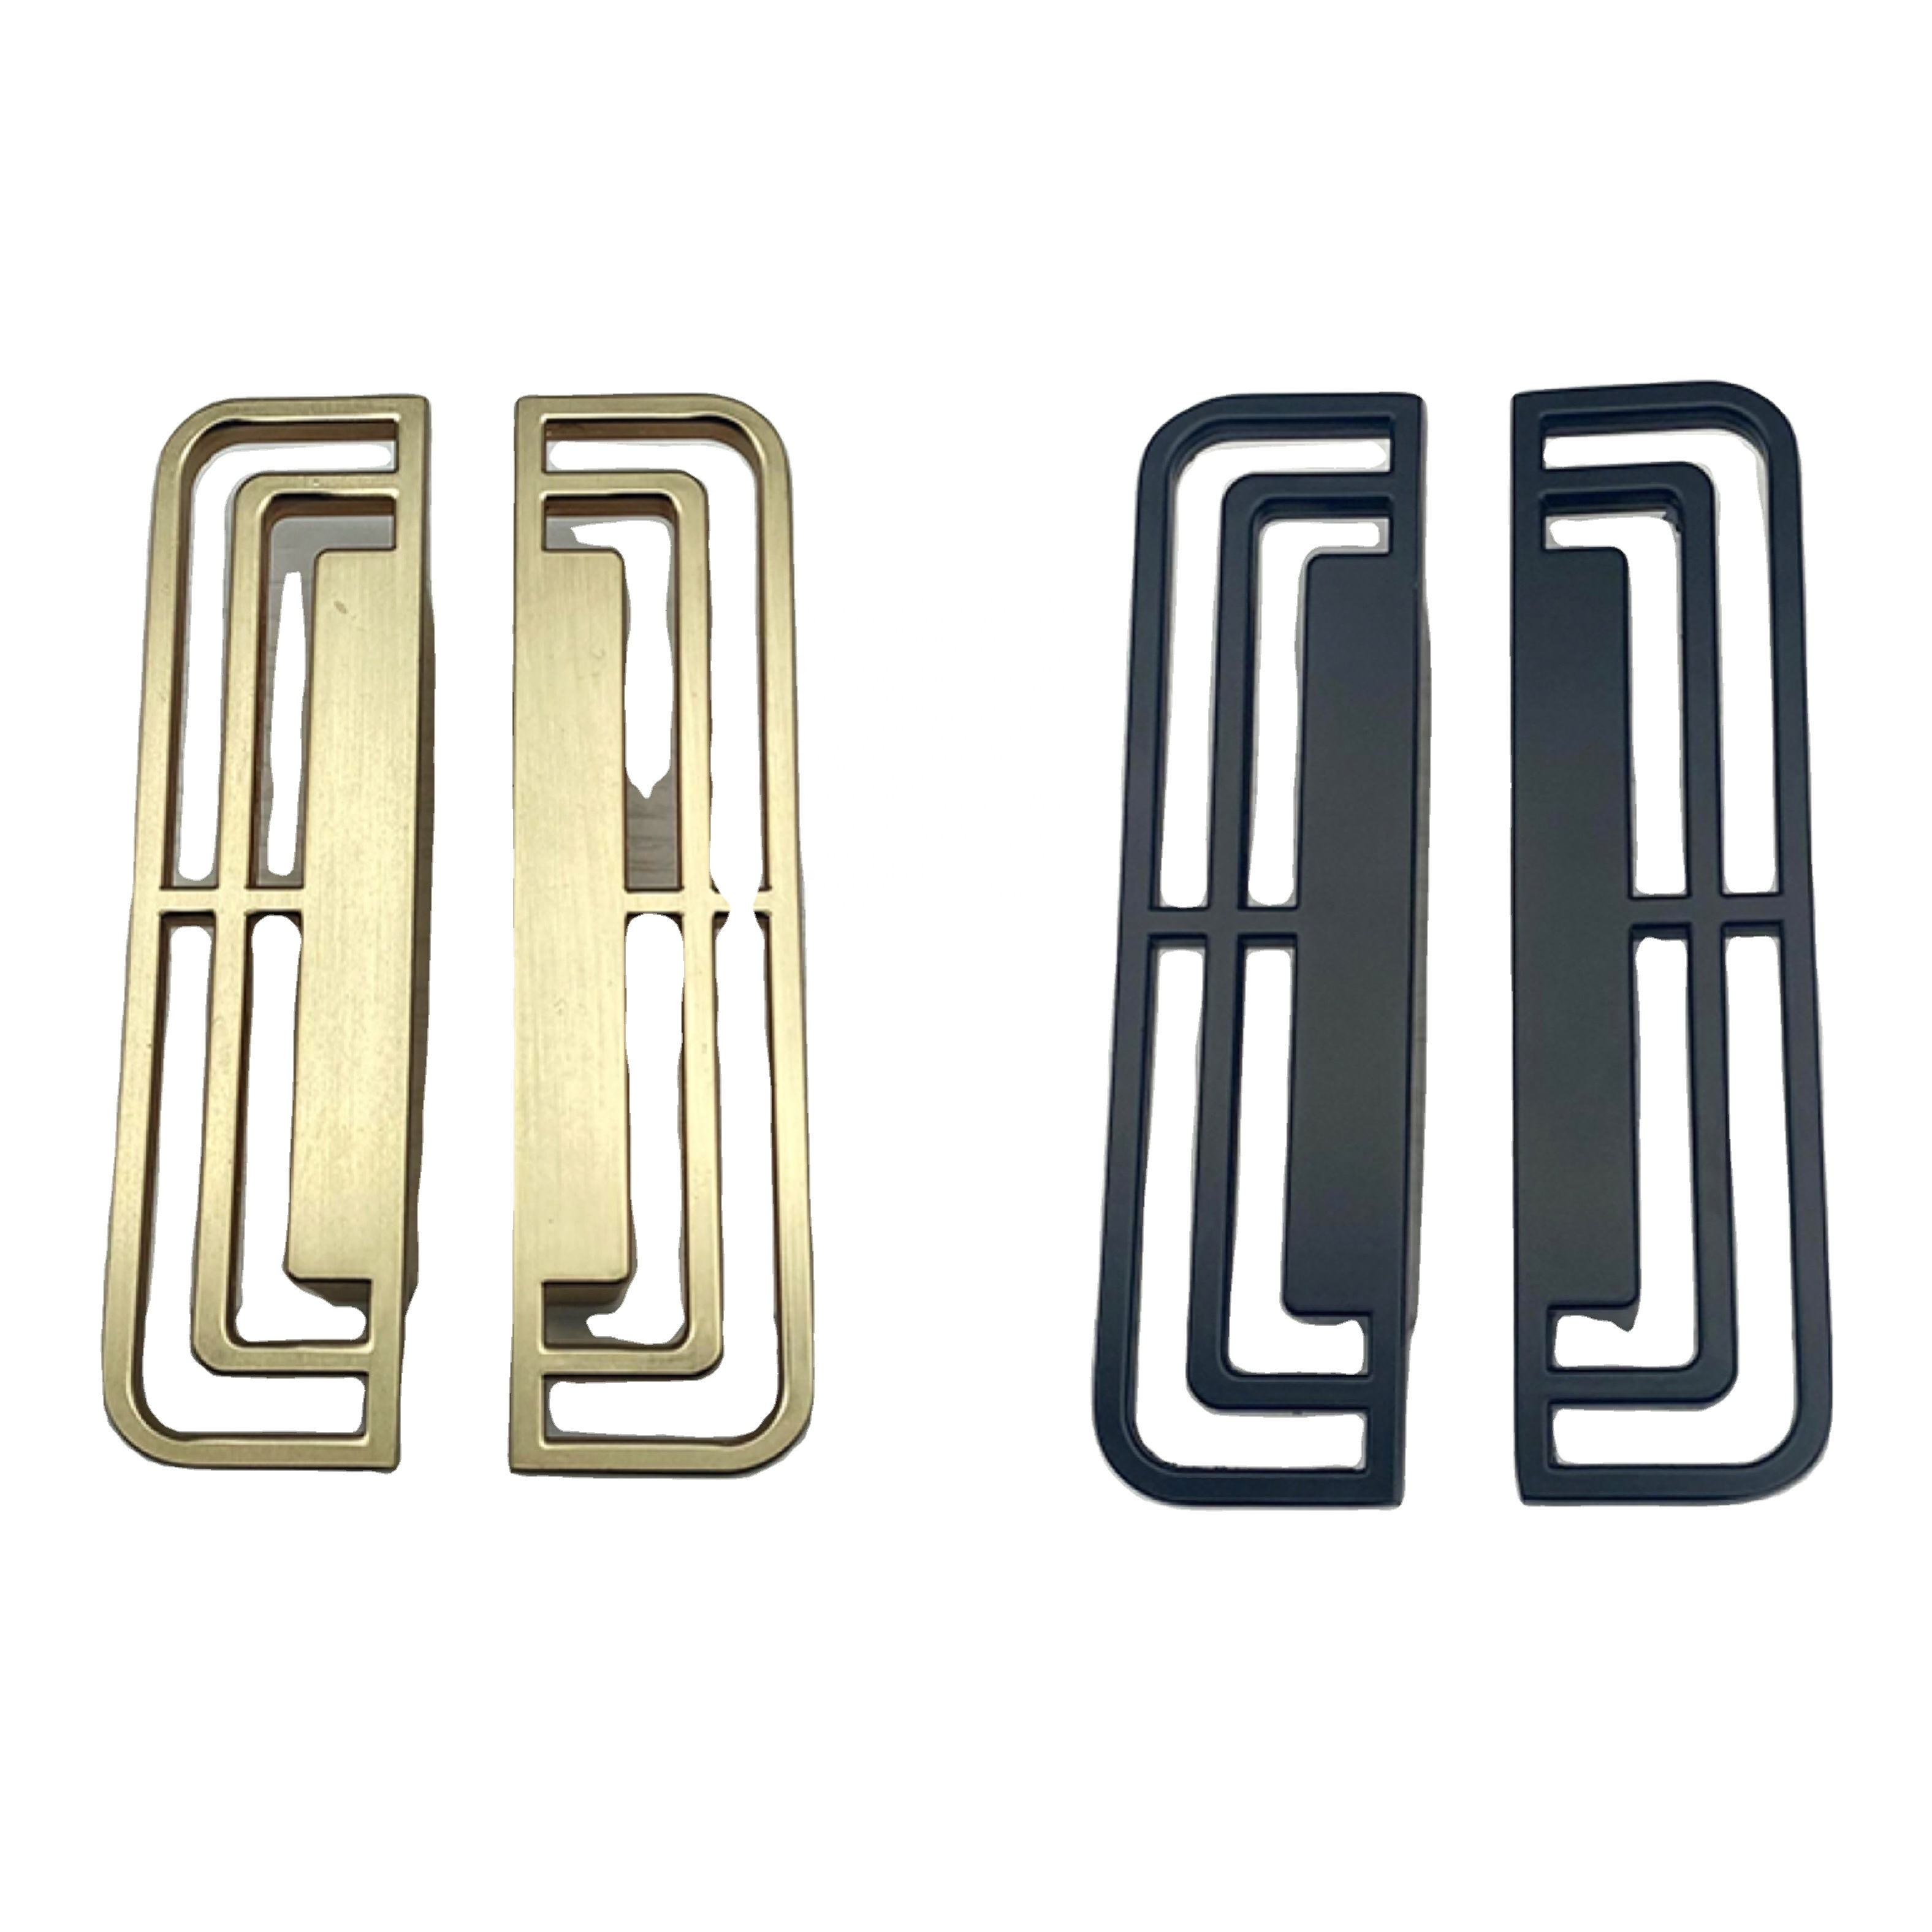 Chinese Left and Right Symmetrical ZAMAK electroplate cabinet door drawer handle furniture rectangular hollow pull copper black